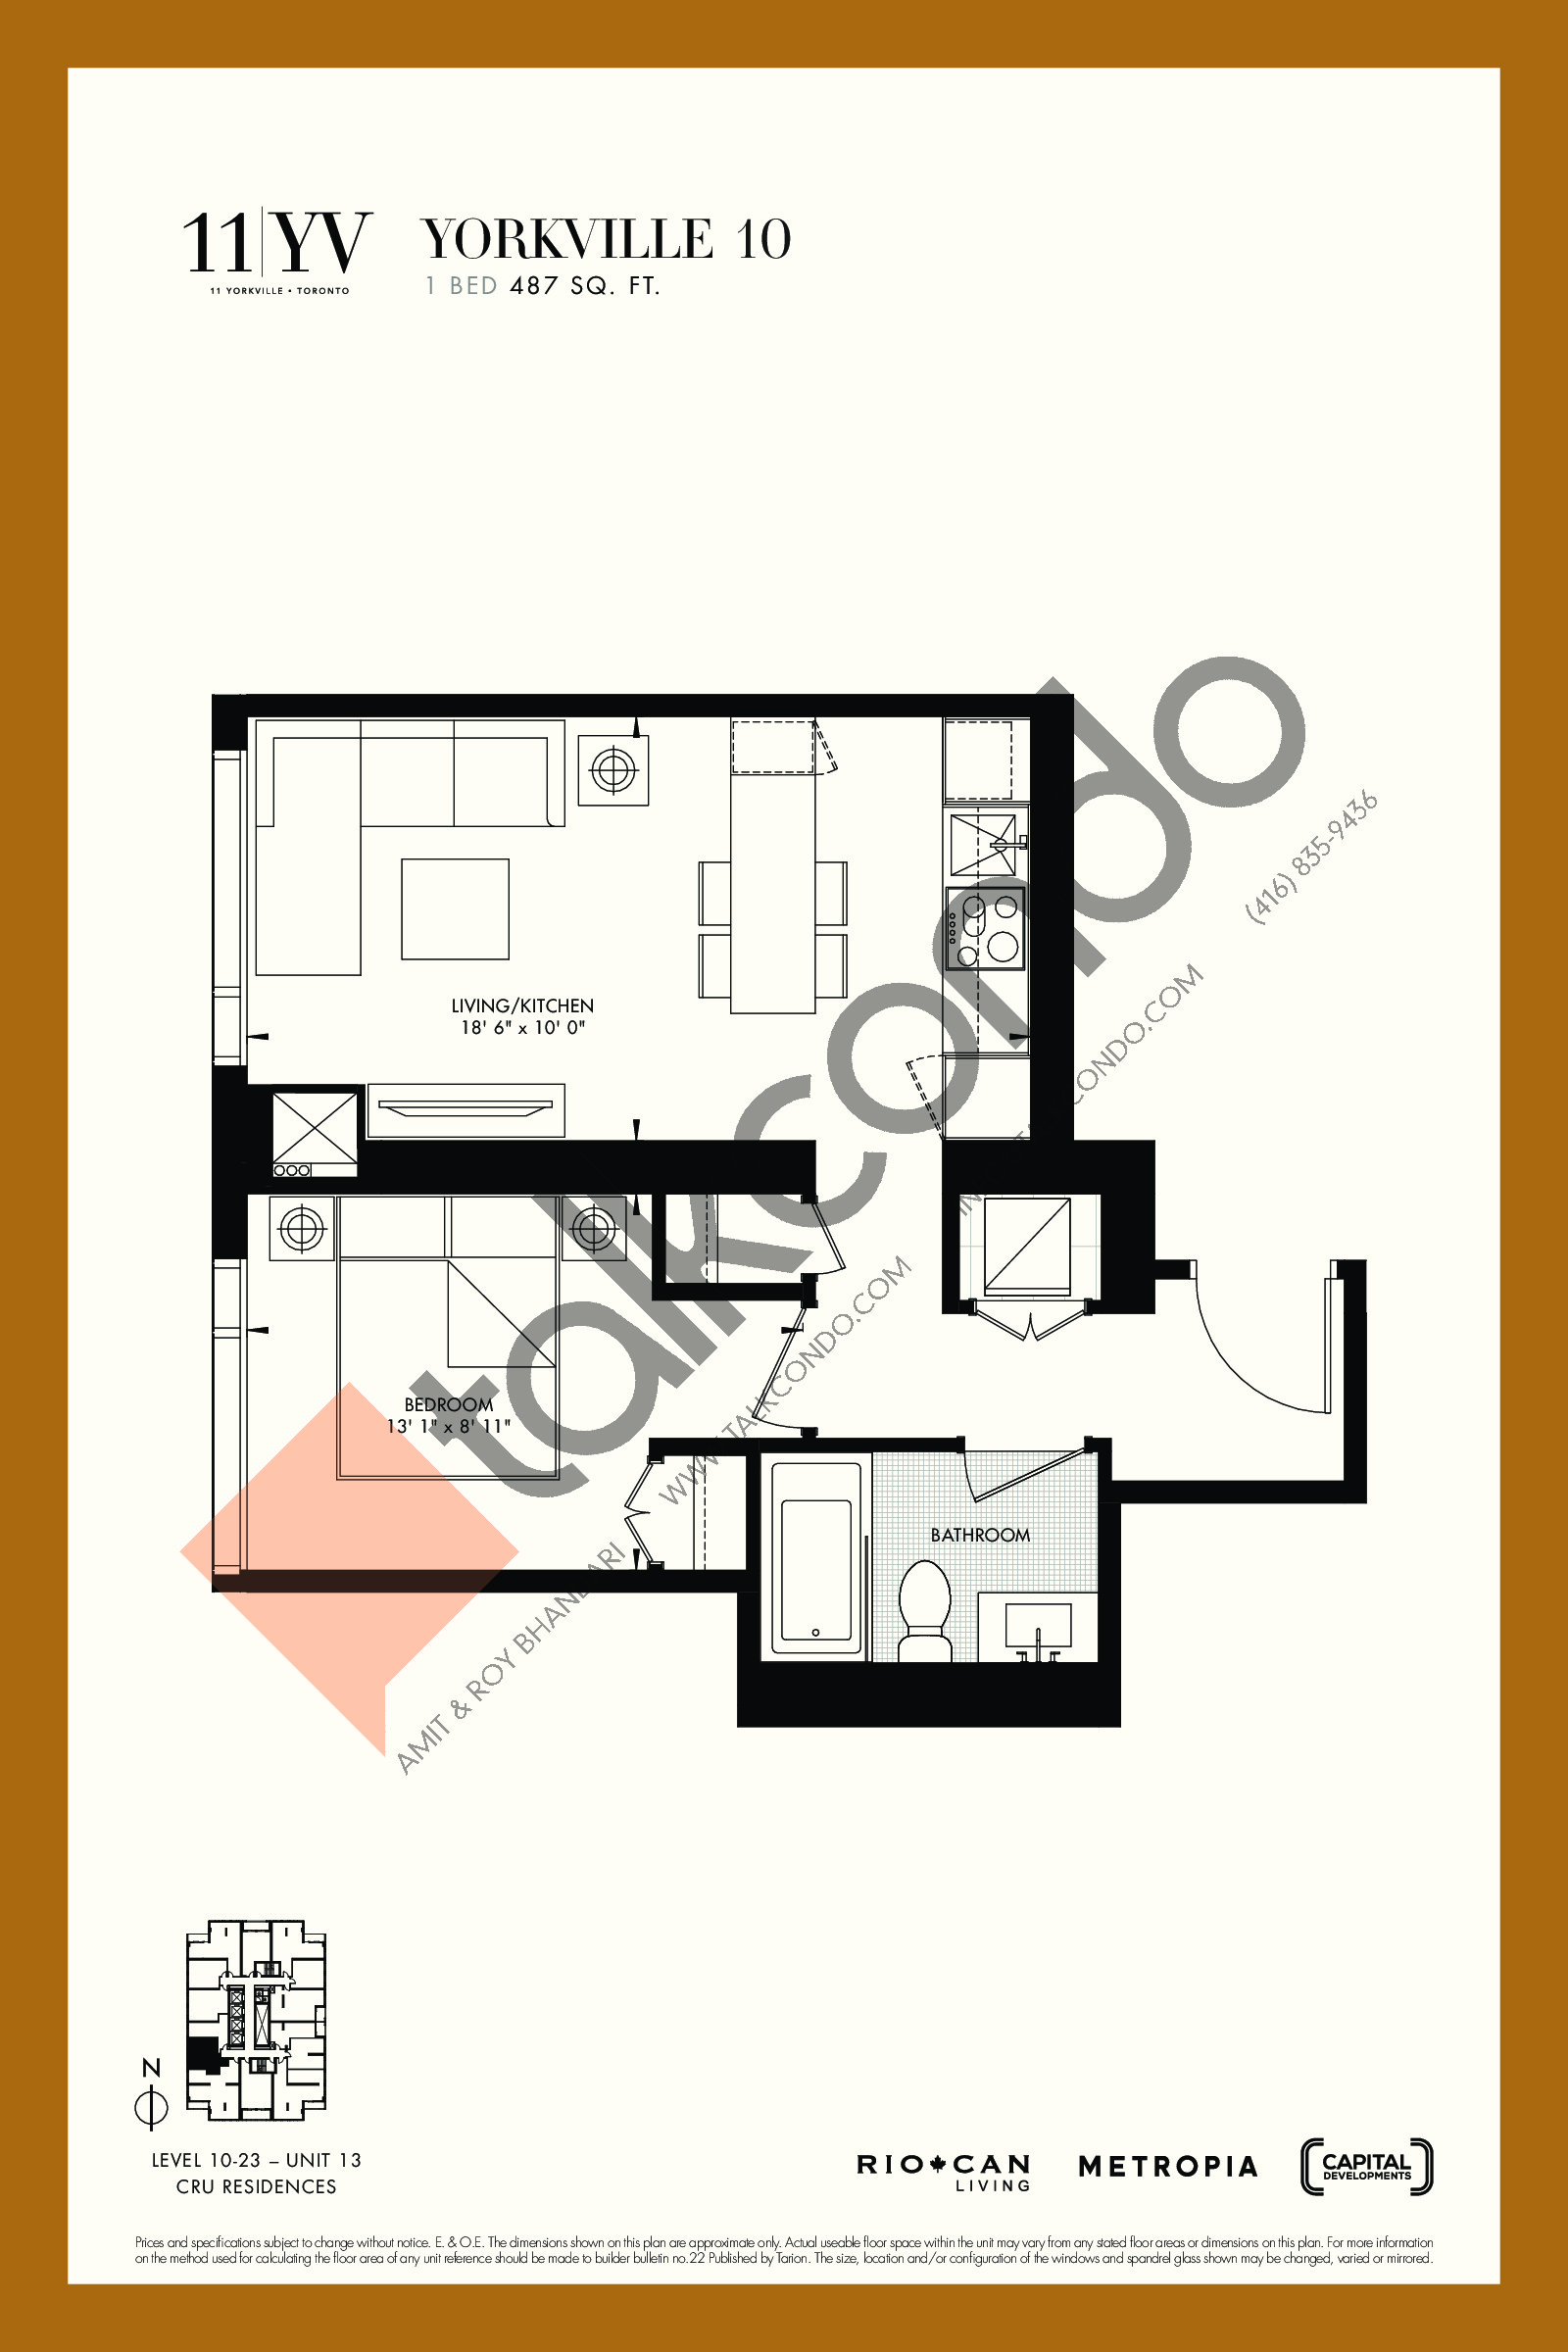 Yorkville 10 Floor Plan at 11YV Condos - 487 sq.ft